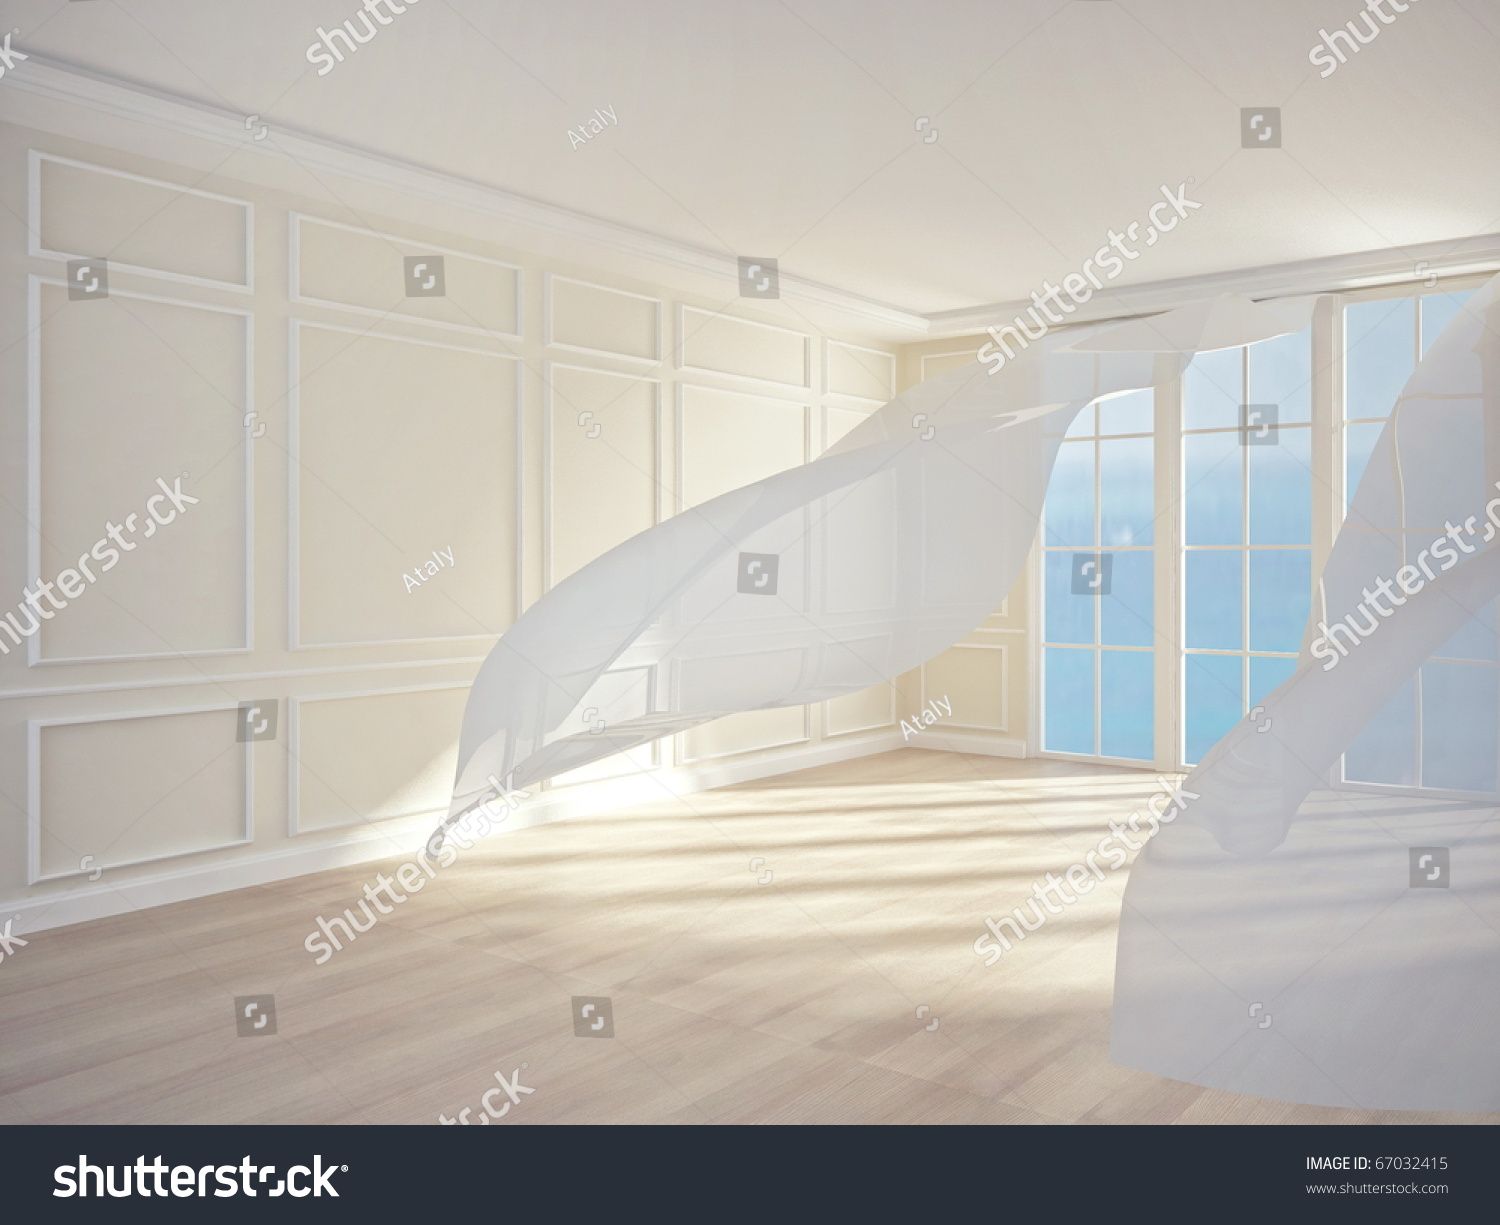 an interior of a room with white flowing curtains. 3d render stock